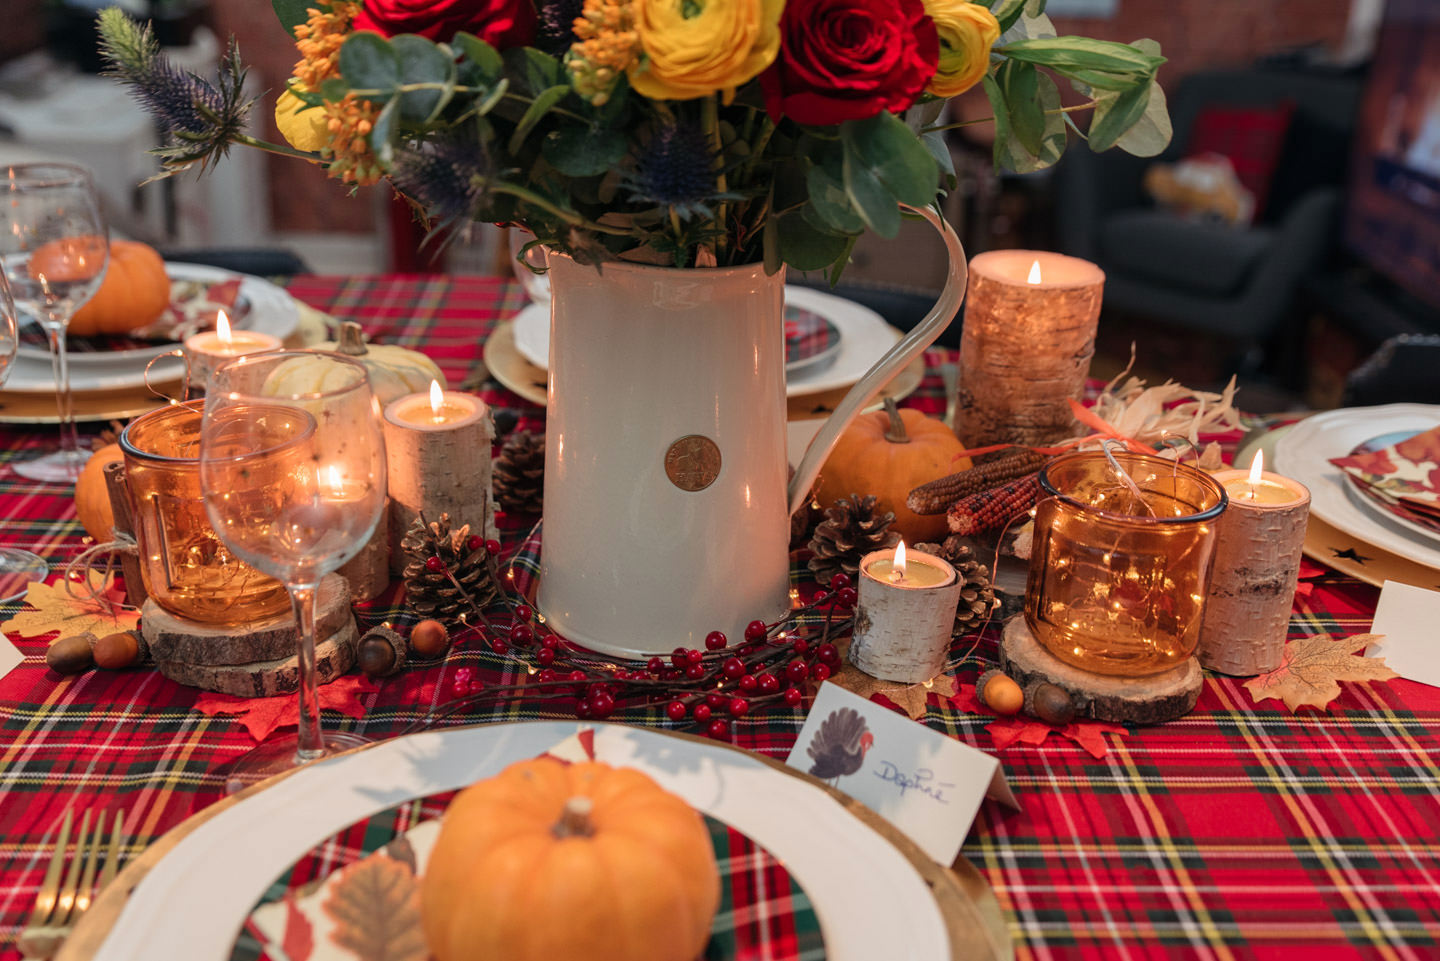 Blog-Mode-And-The-City-Lifestyle-Thanksgiving-2017-3